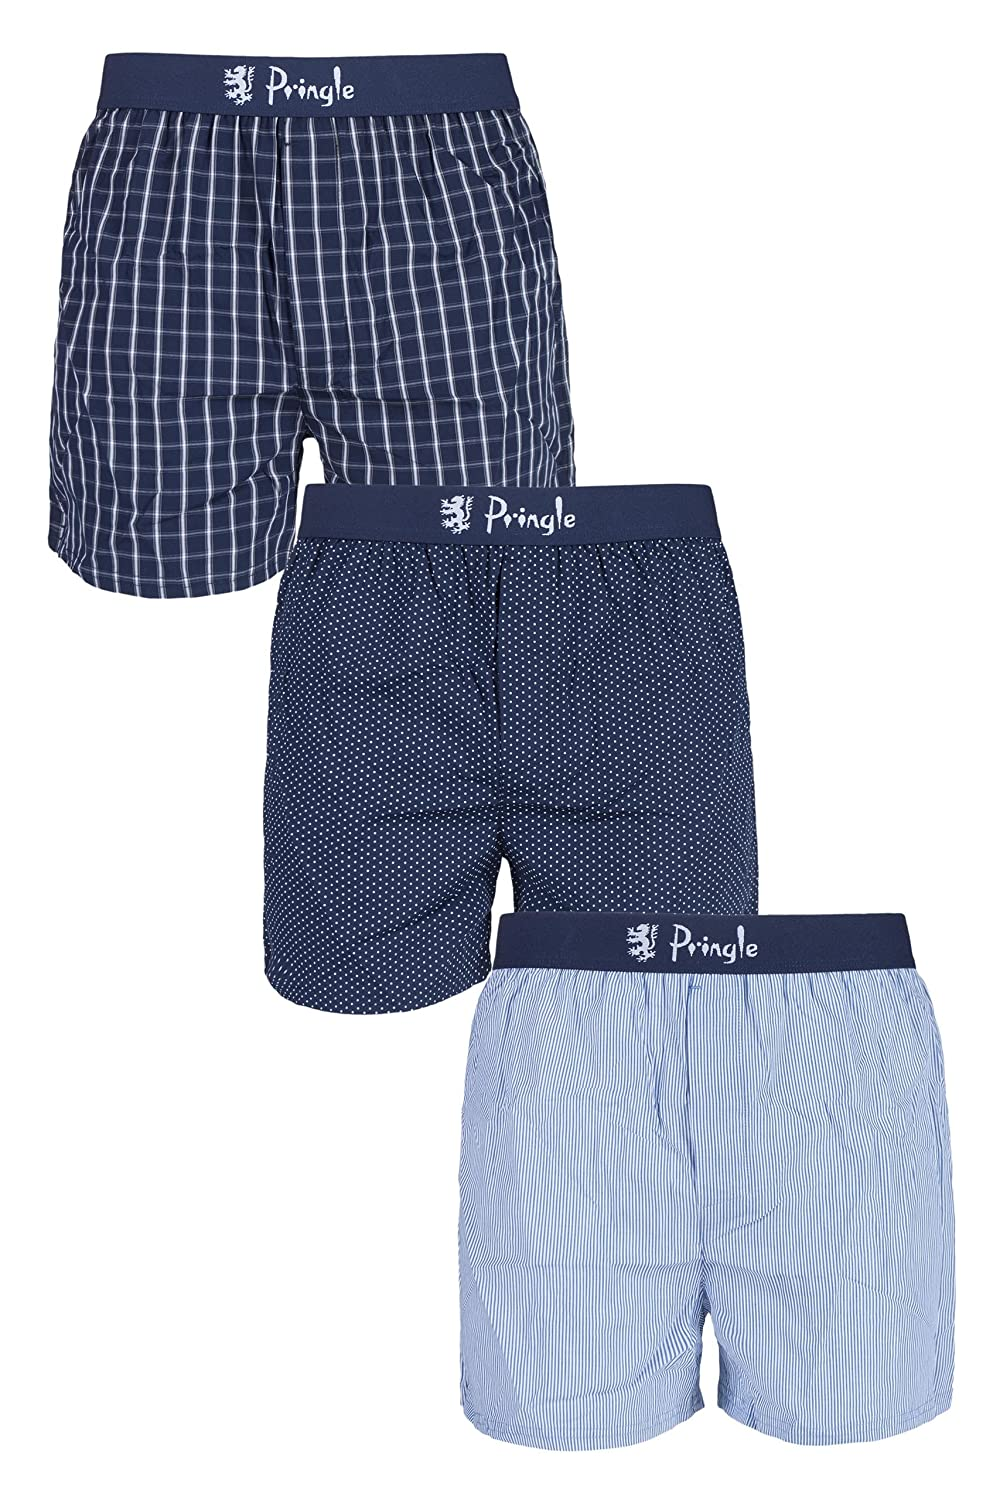 5c4ade960b30 Mens 3 Pack Pringle 100% Cotton Check Dot and Stripe Woven Boxers Navy  Small: Amazon.co.uk: Clothing